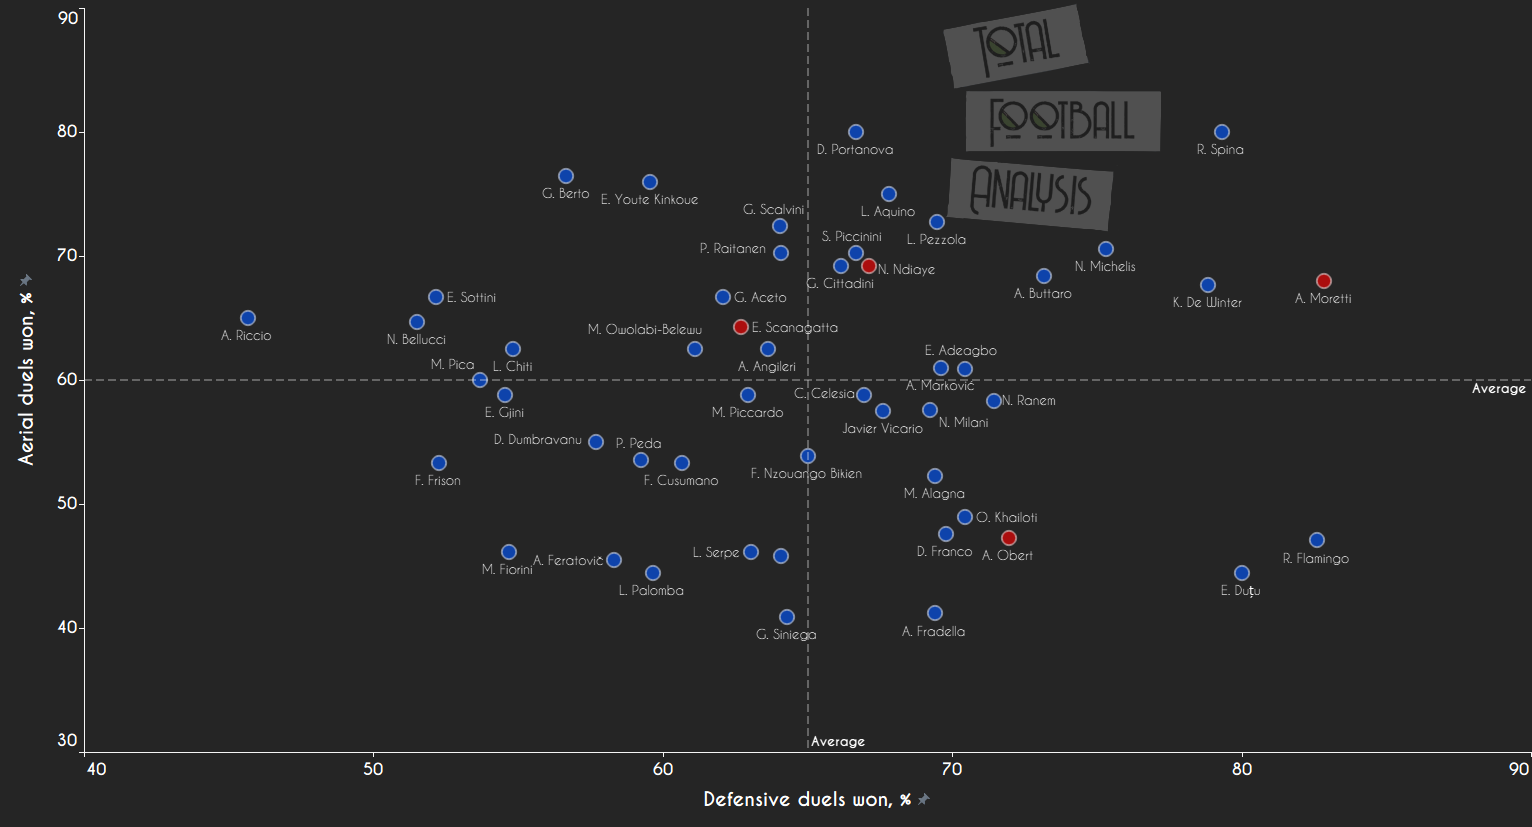 Primavera data analysis shows why talented centre-back is already labelled as next Koulibaly